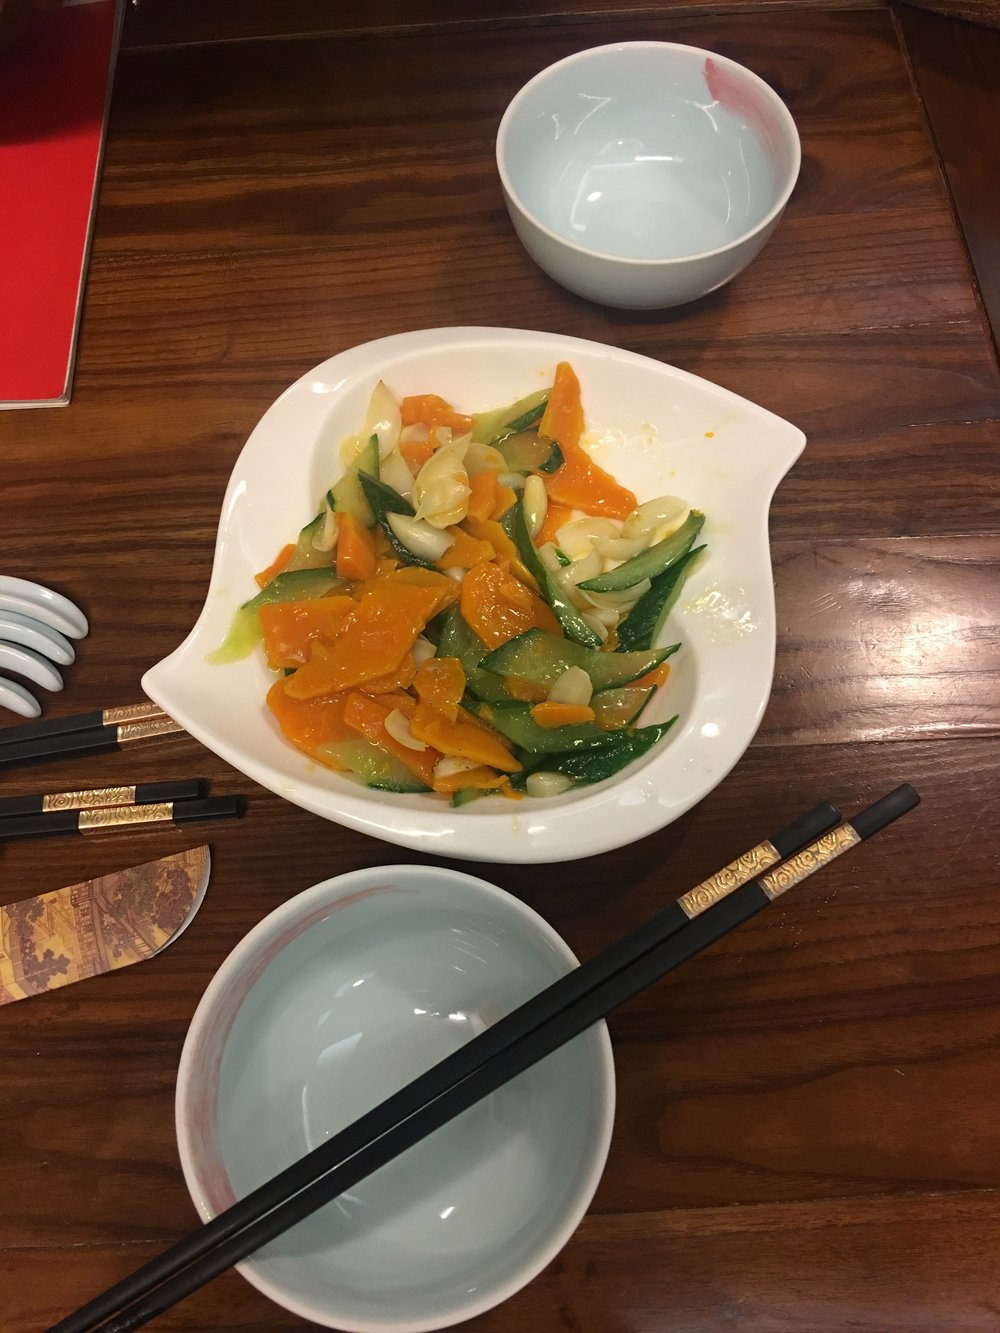 Warm cucumbers, pumpkin and flower pedals. This was at Godly in Shanghai.